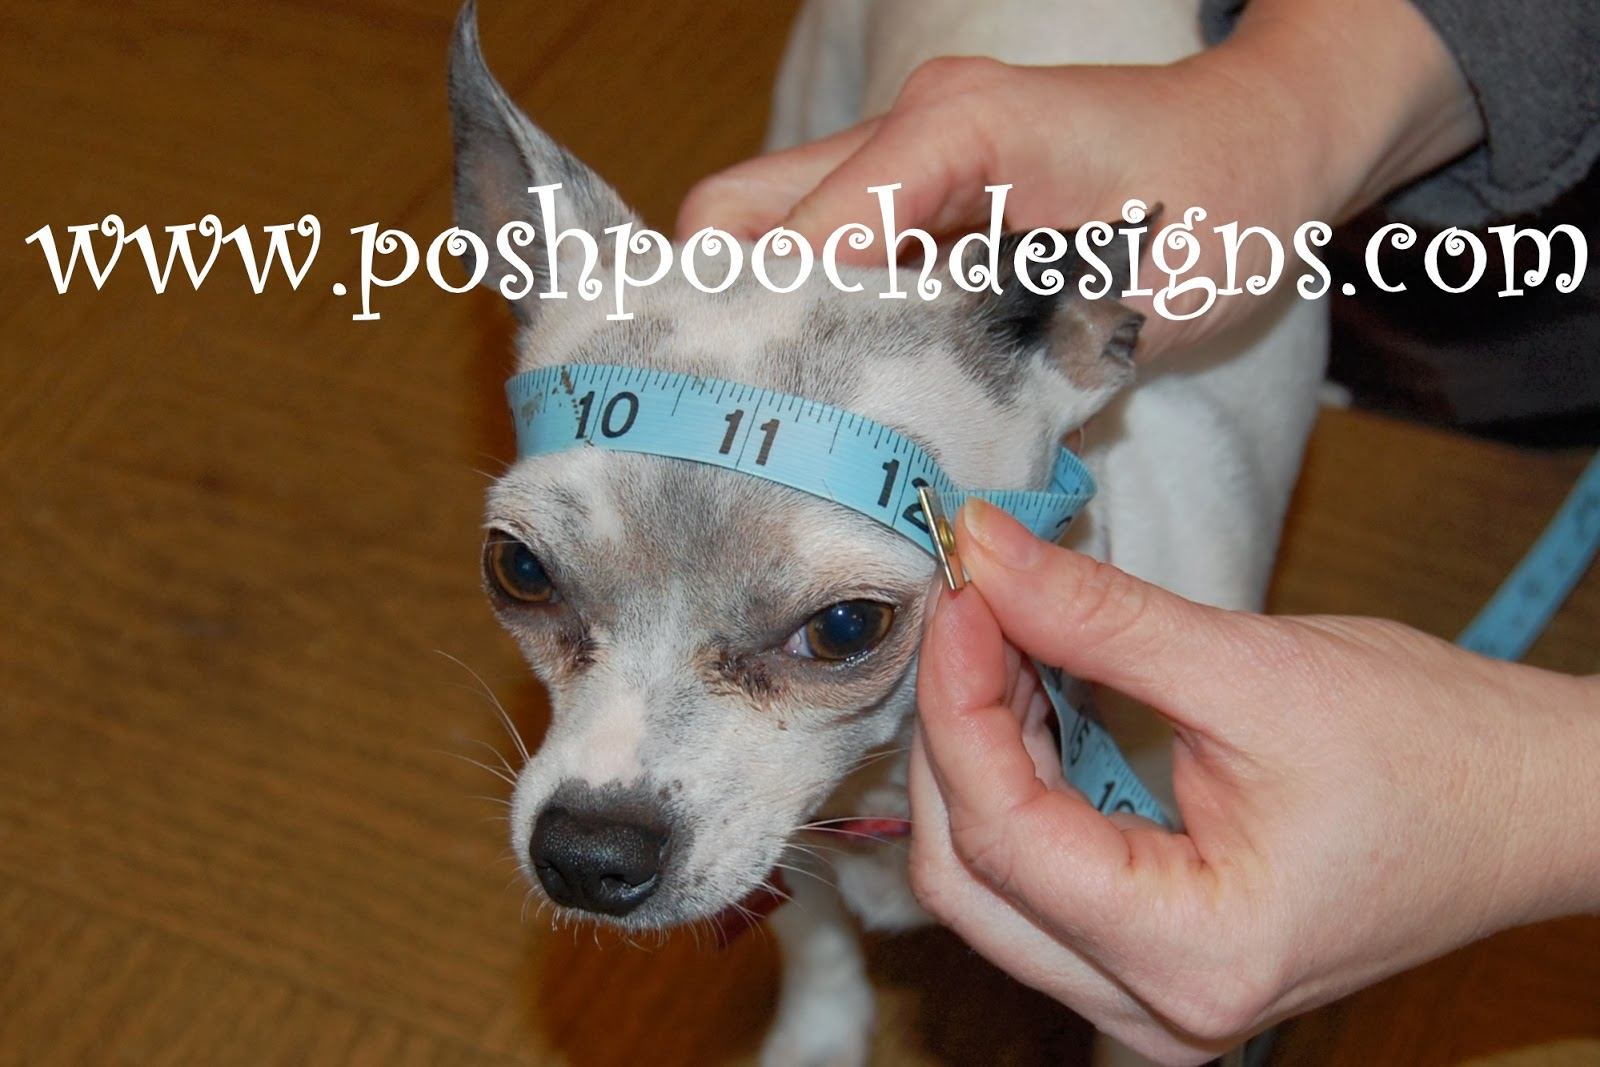 Crochet Pattern For Dog Hat With Ear Holes : Posh Pooch Designs Dog Clothes: Birthday Dog Hat Crochet ...